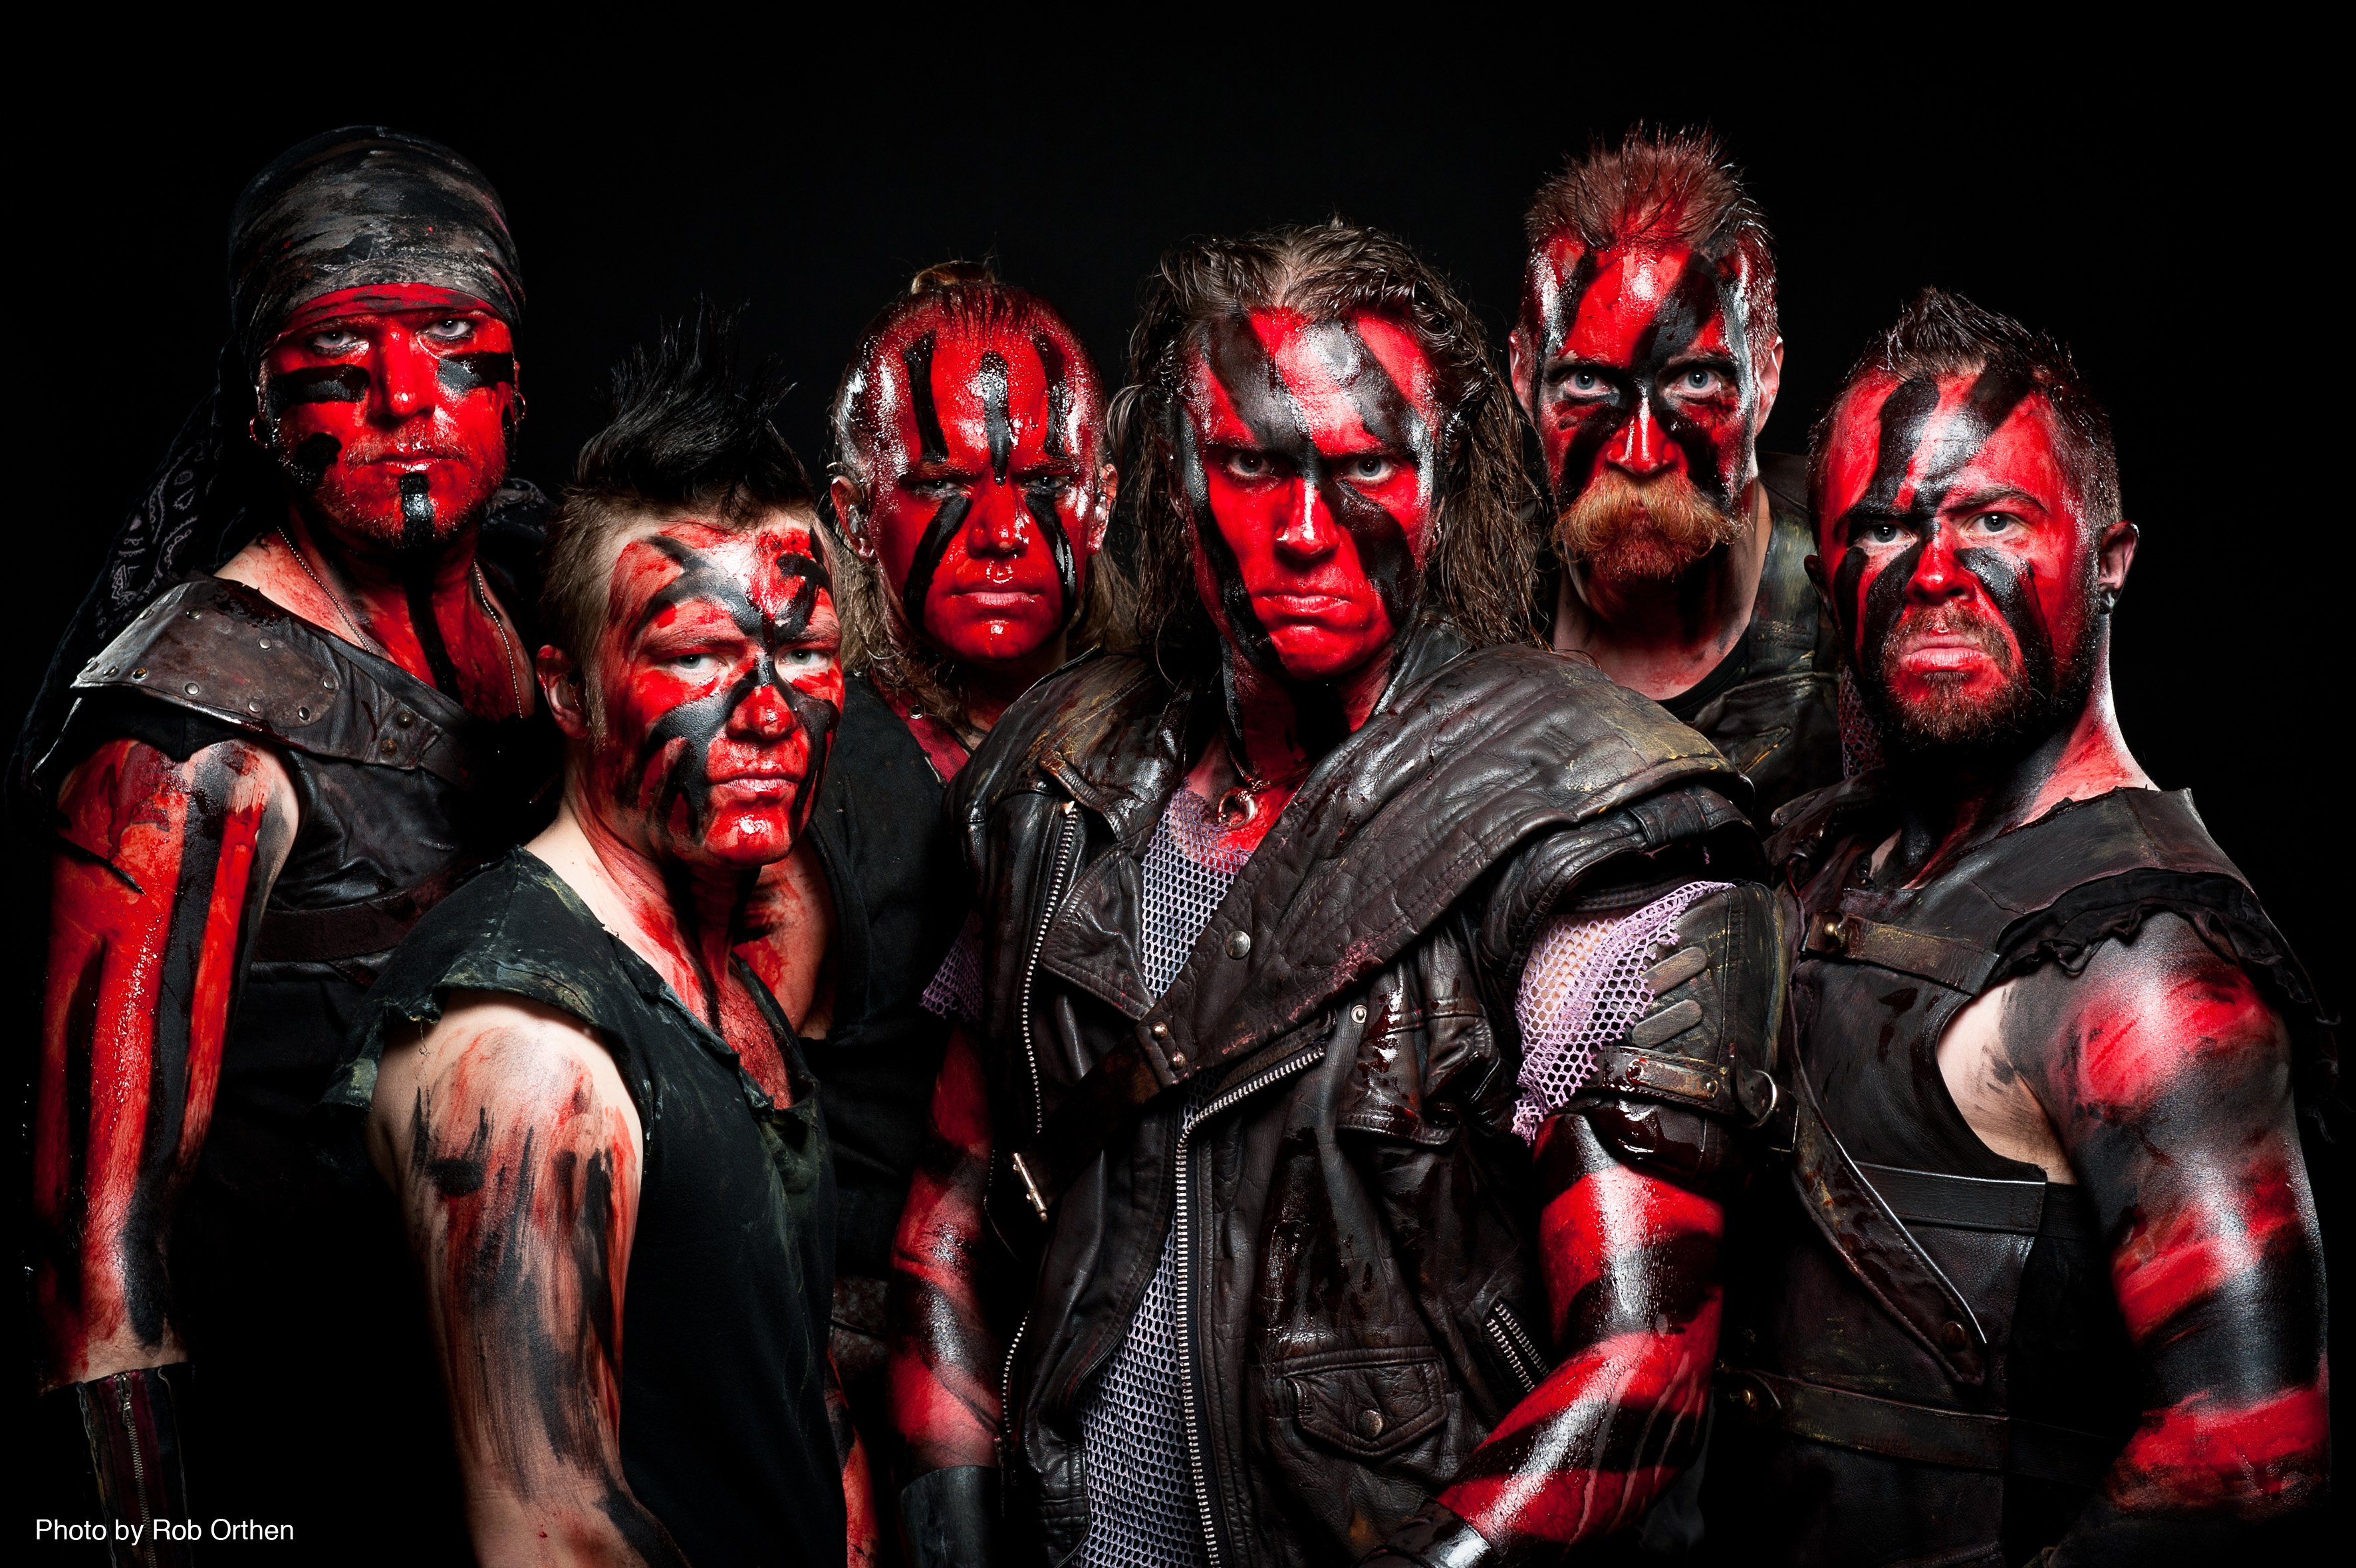 TURISAS folk metal heavy gd wallpaper 3543x2358 299838 3543x2358